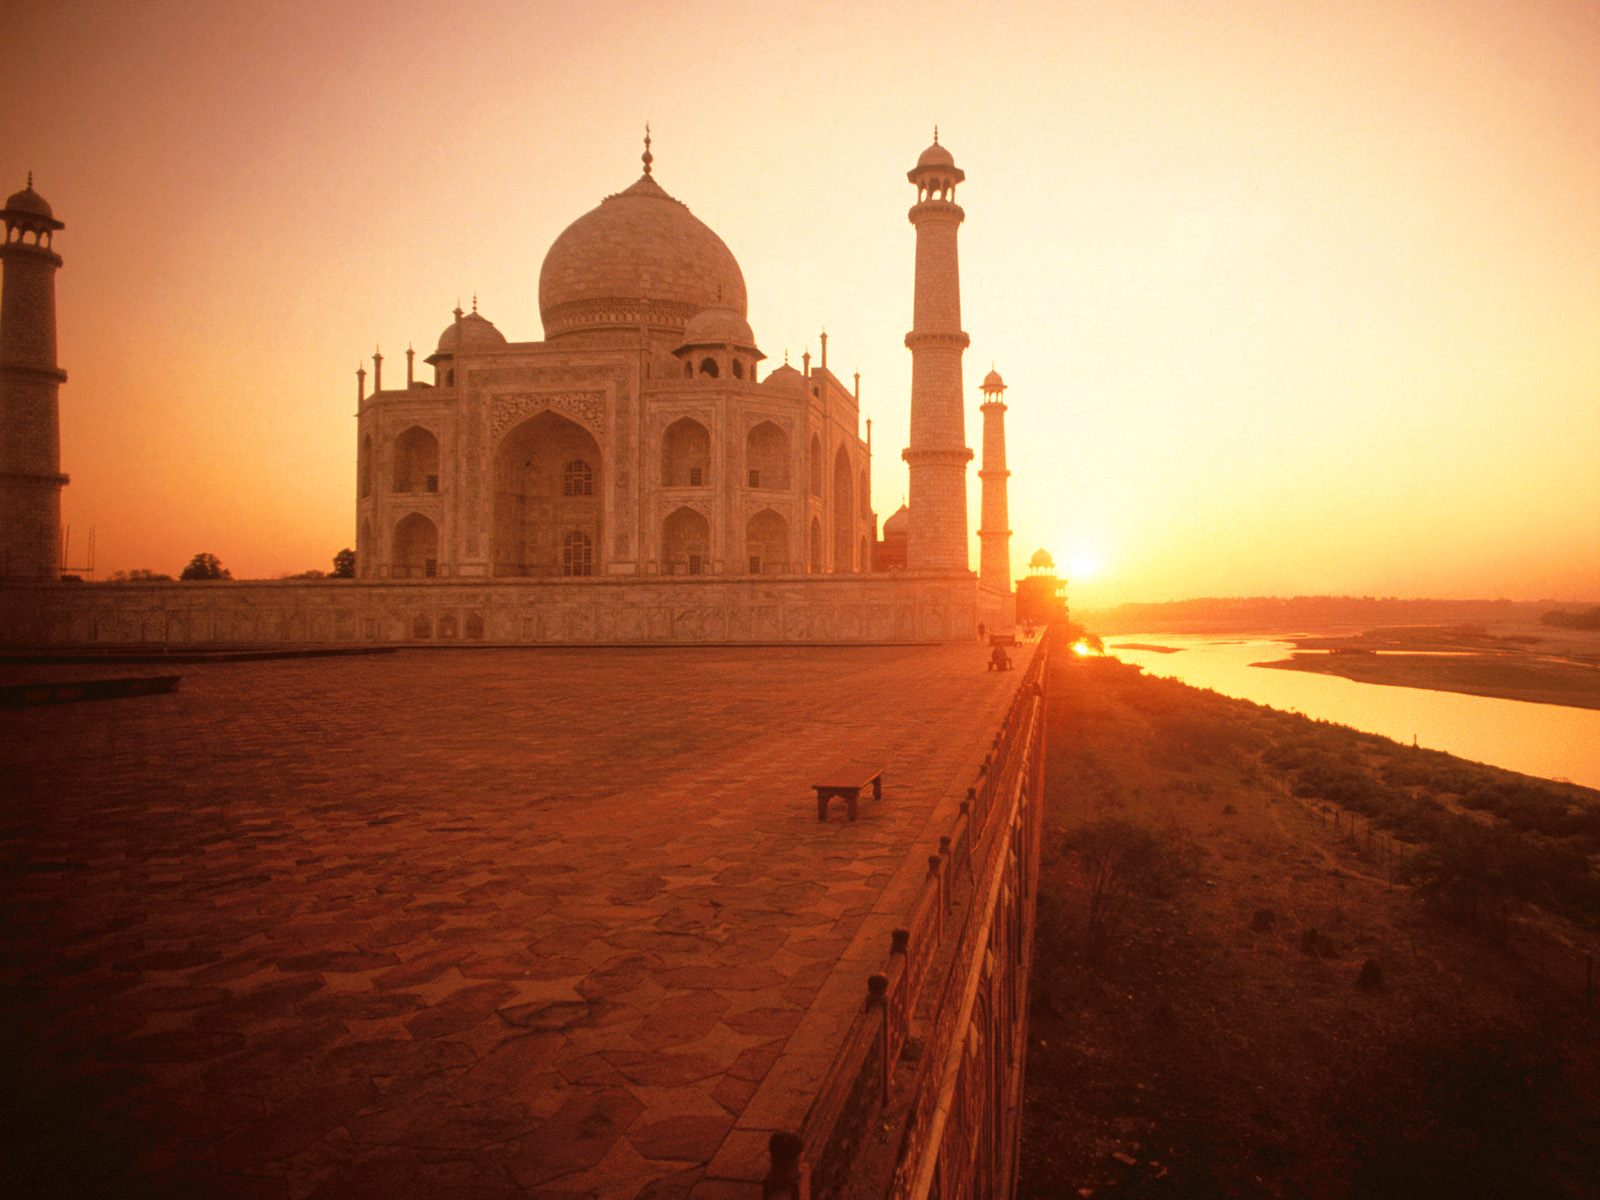 wallpaper the taj mahal at sunset india head, india, mahal, sunset